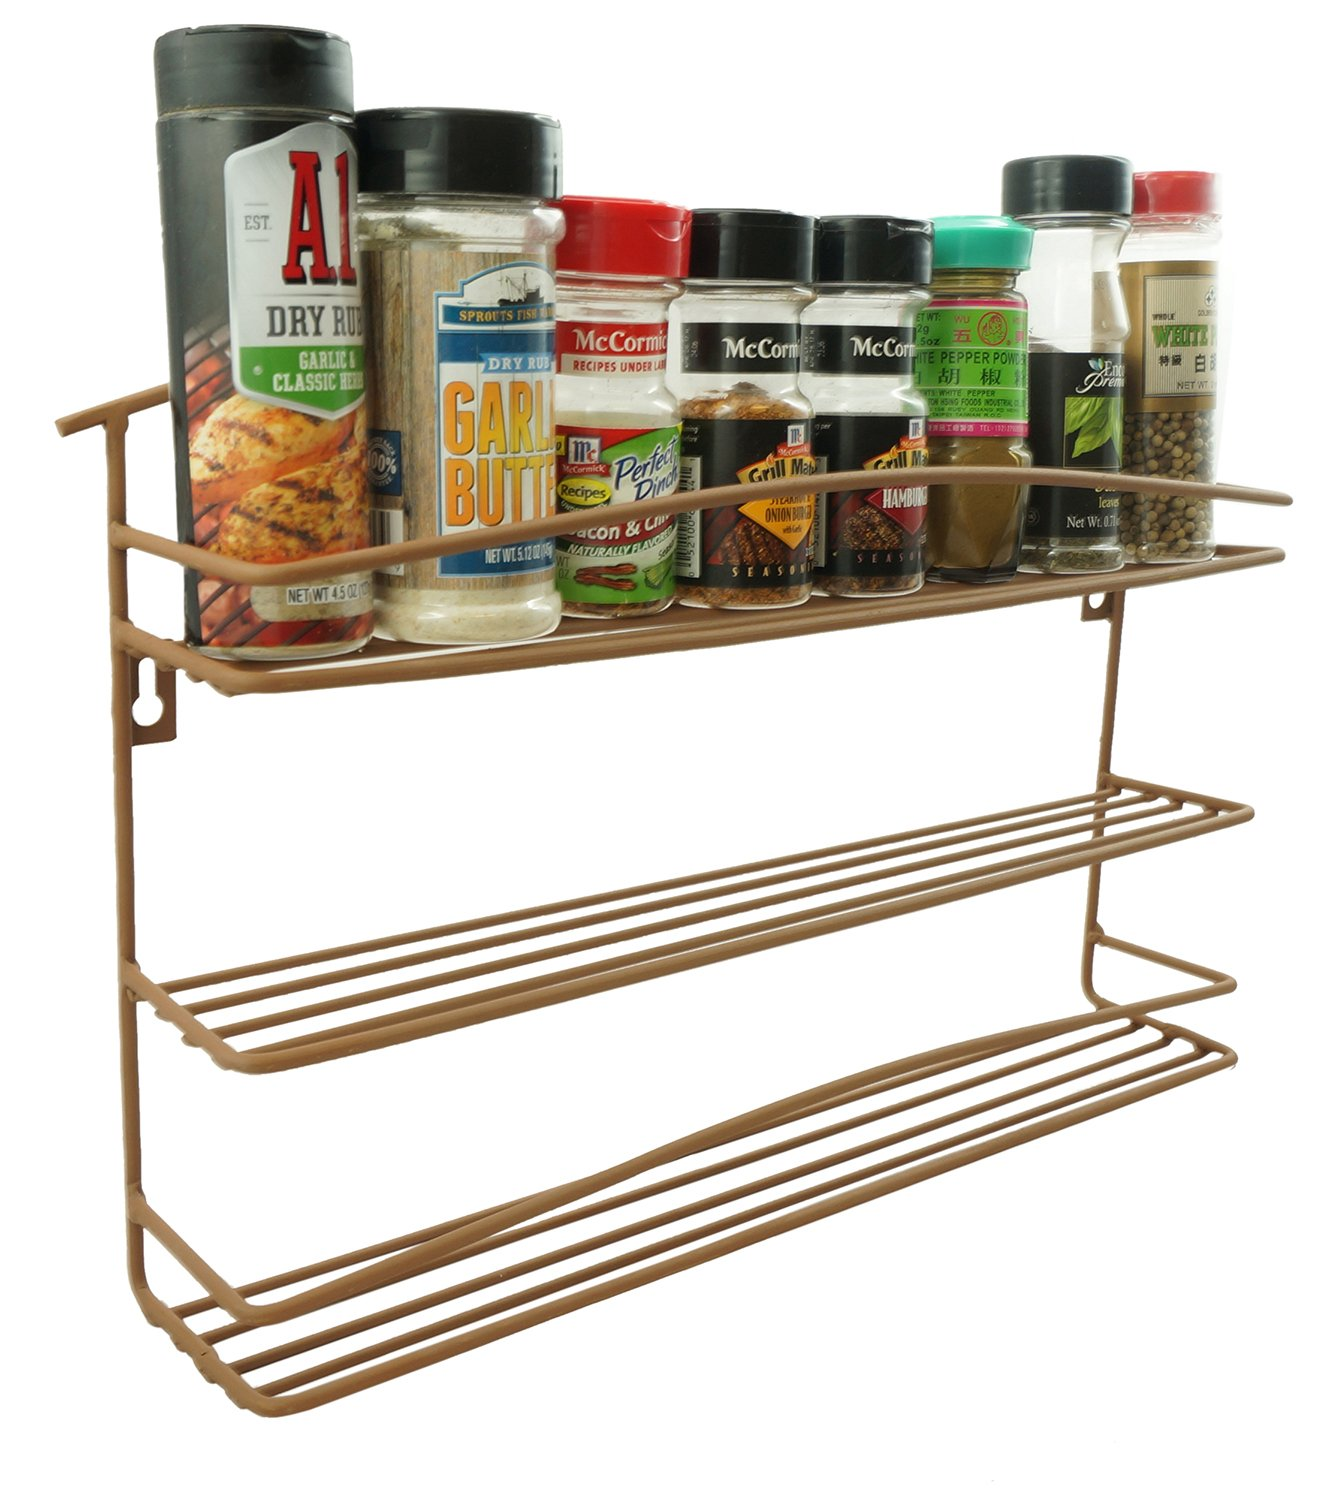 "Wall Mount 3 Tier Metal Spice and Grinder Rack Kitchen Metal 2.5"" Spice Organizer Pantry Cabinet Hanging 2.5 inch Diameter Spice and Grinder Storage Counter Top Organizer Raw Rustic Brown"